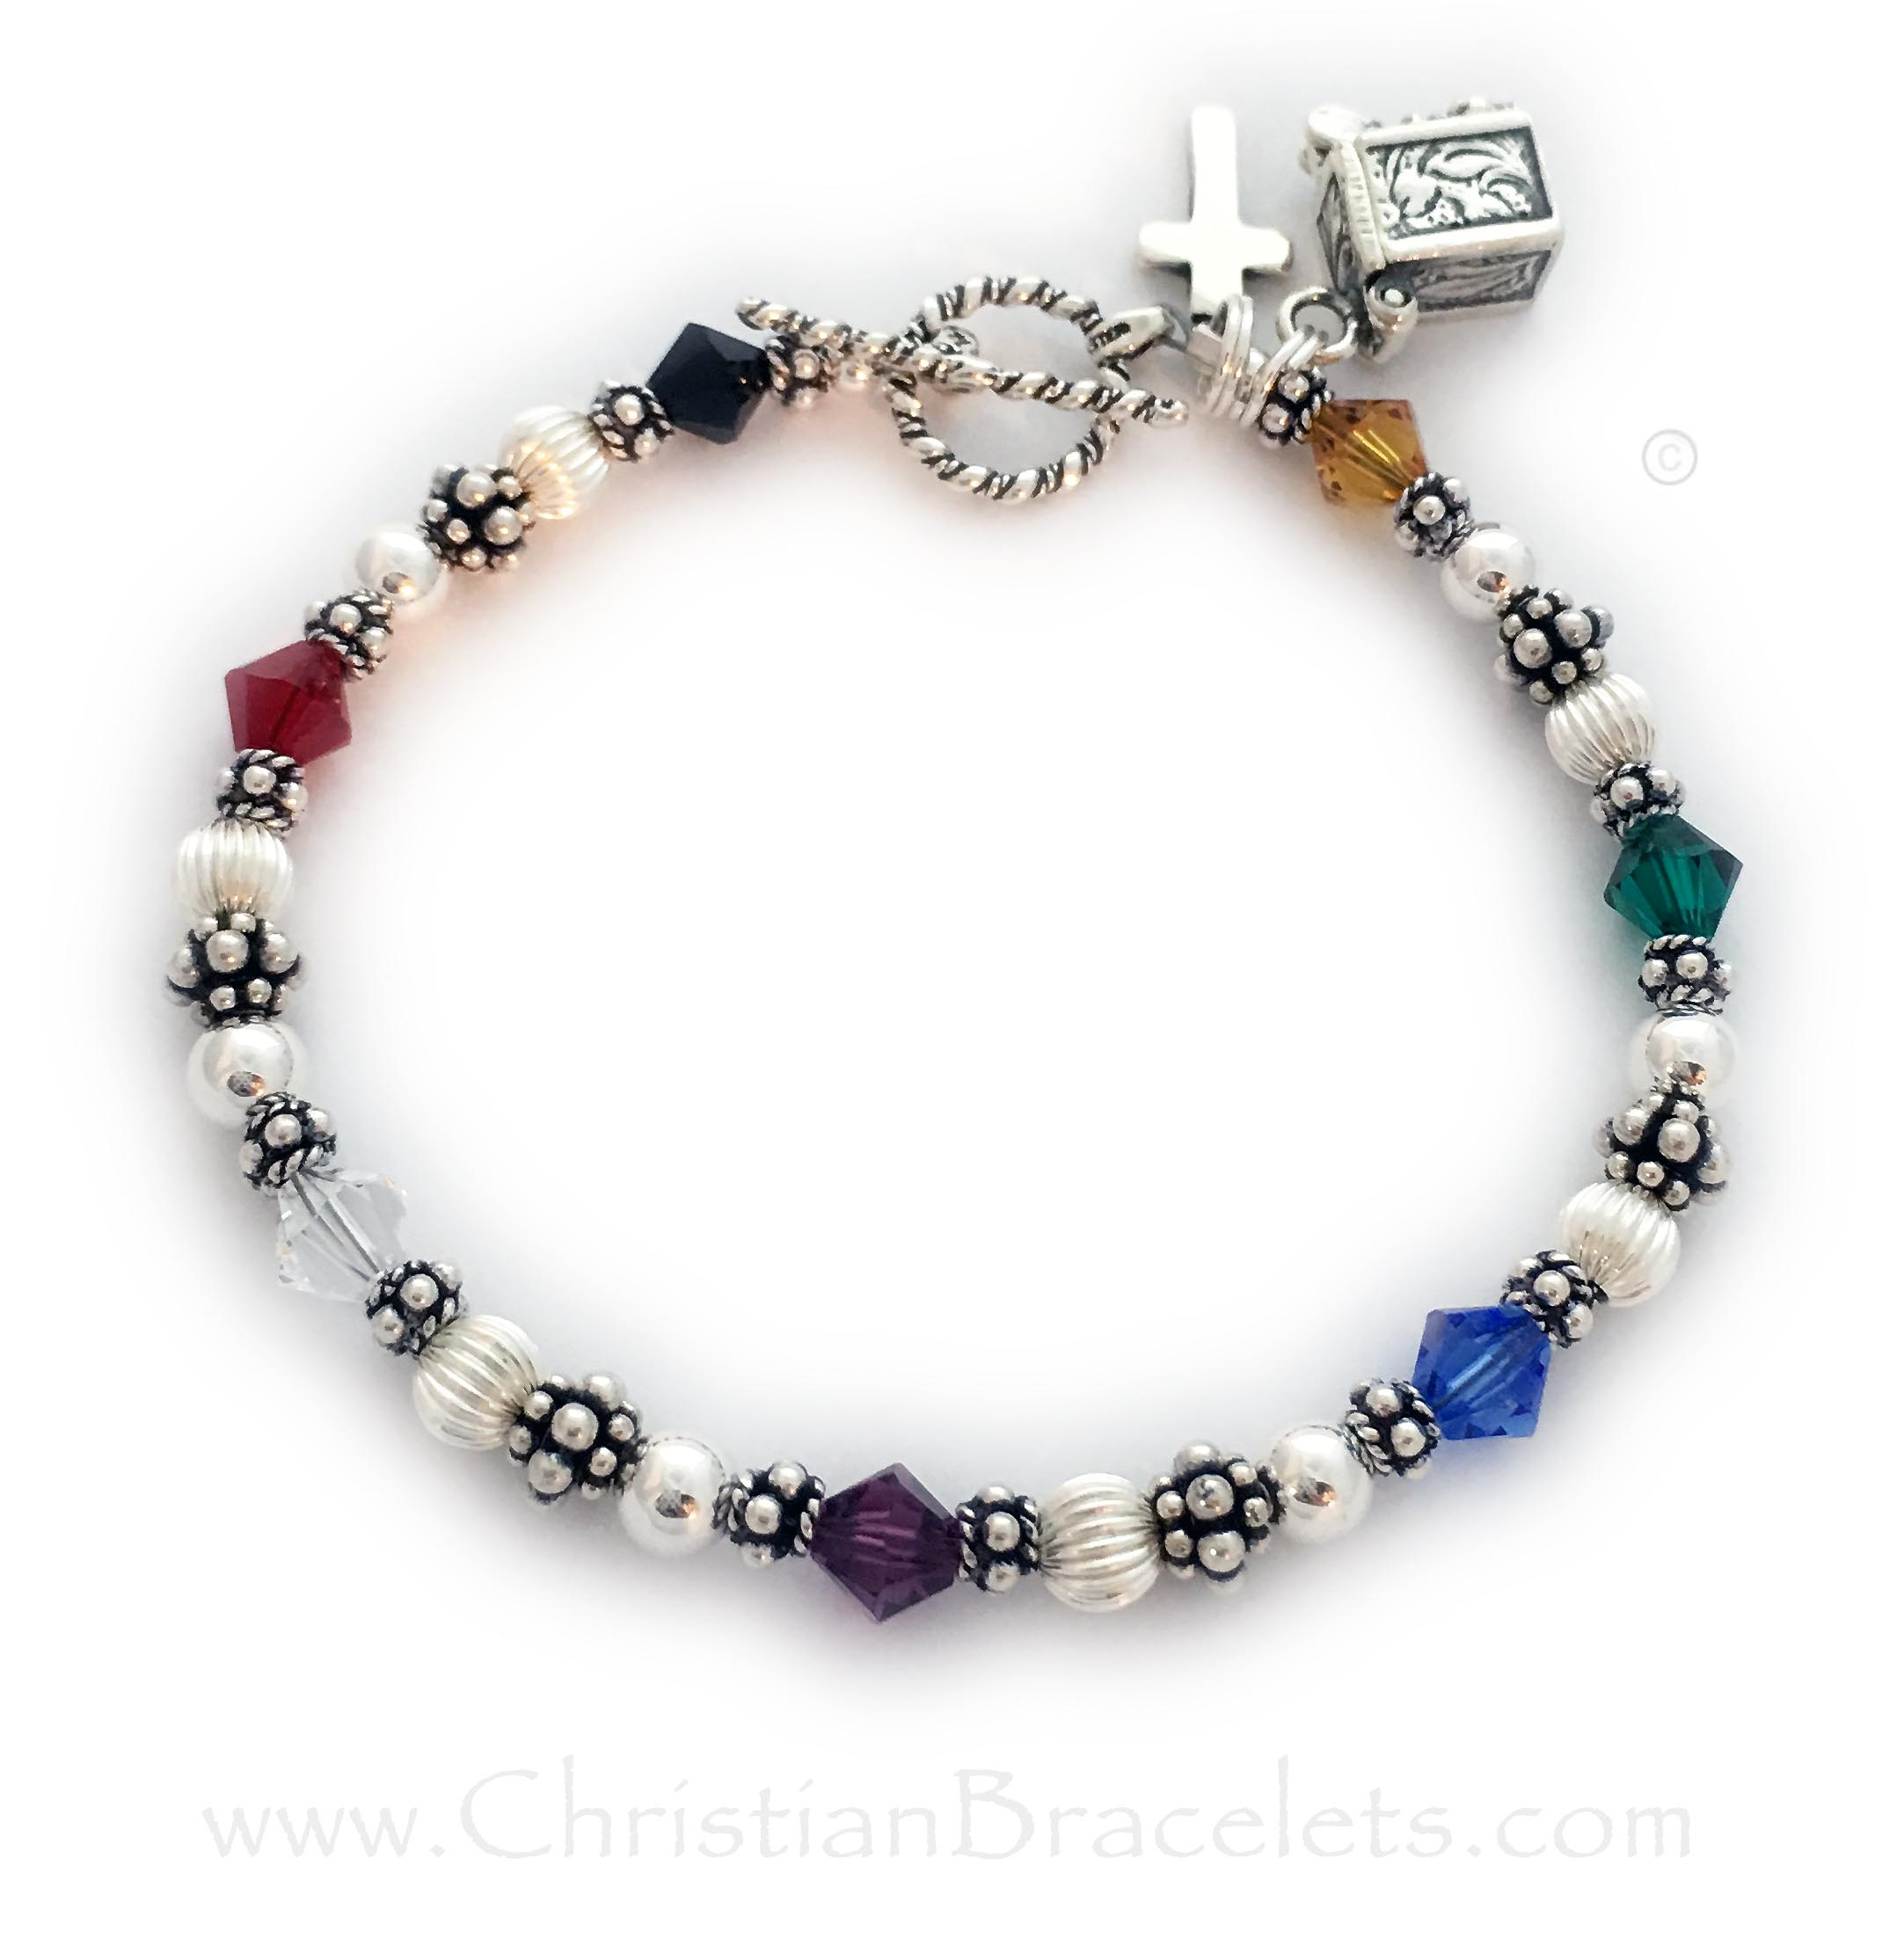 Bali Bicone Salvation Bracelet with a Cross Charm with a Twisted Toggle Clasp. CB-Salvation-5-Sterling-Silver *Shown with 1 add-on charm: Prayer Box Charm*